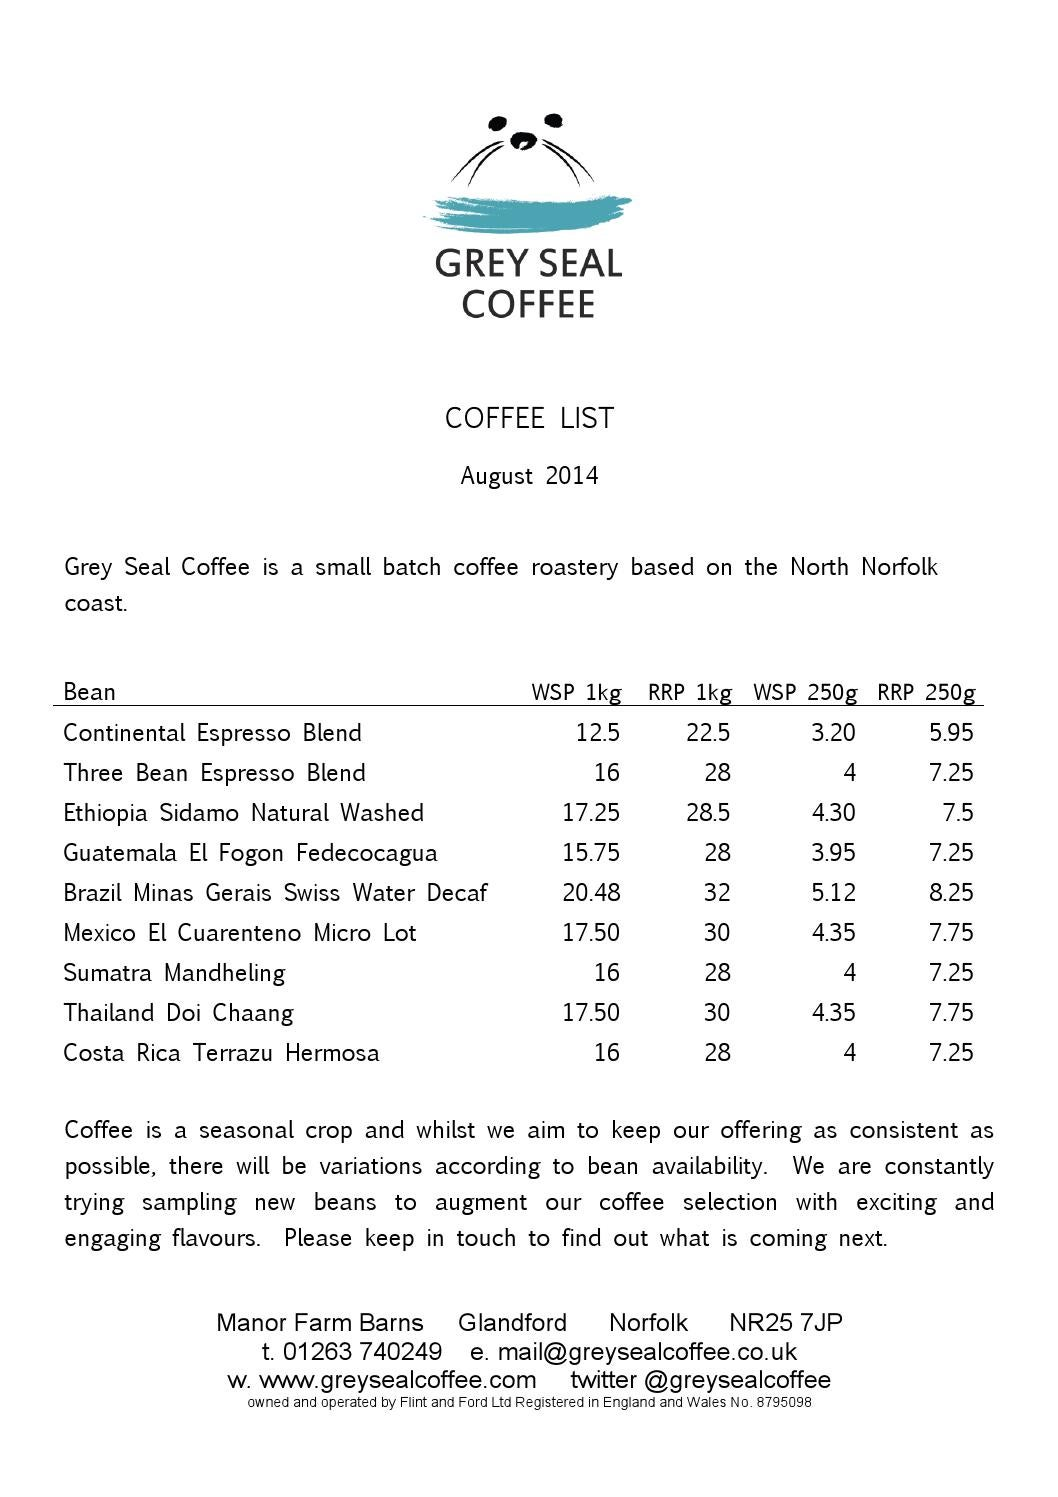 Wholesale Retail Price List August 14 By Grey Seal Coffee